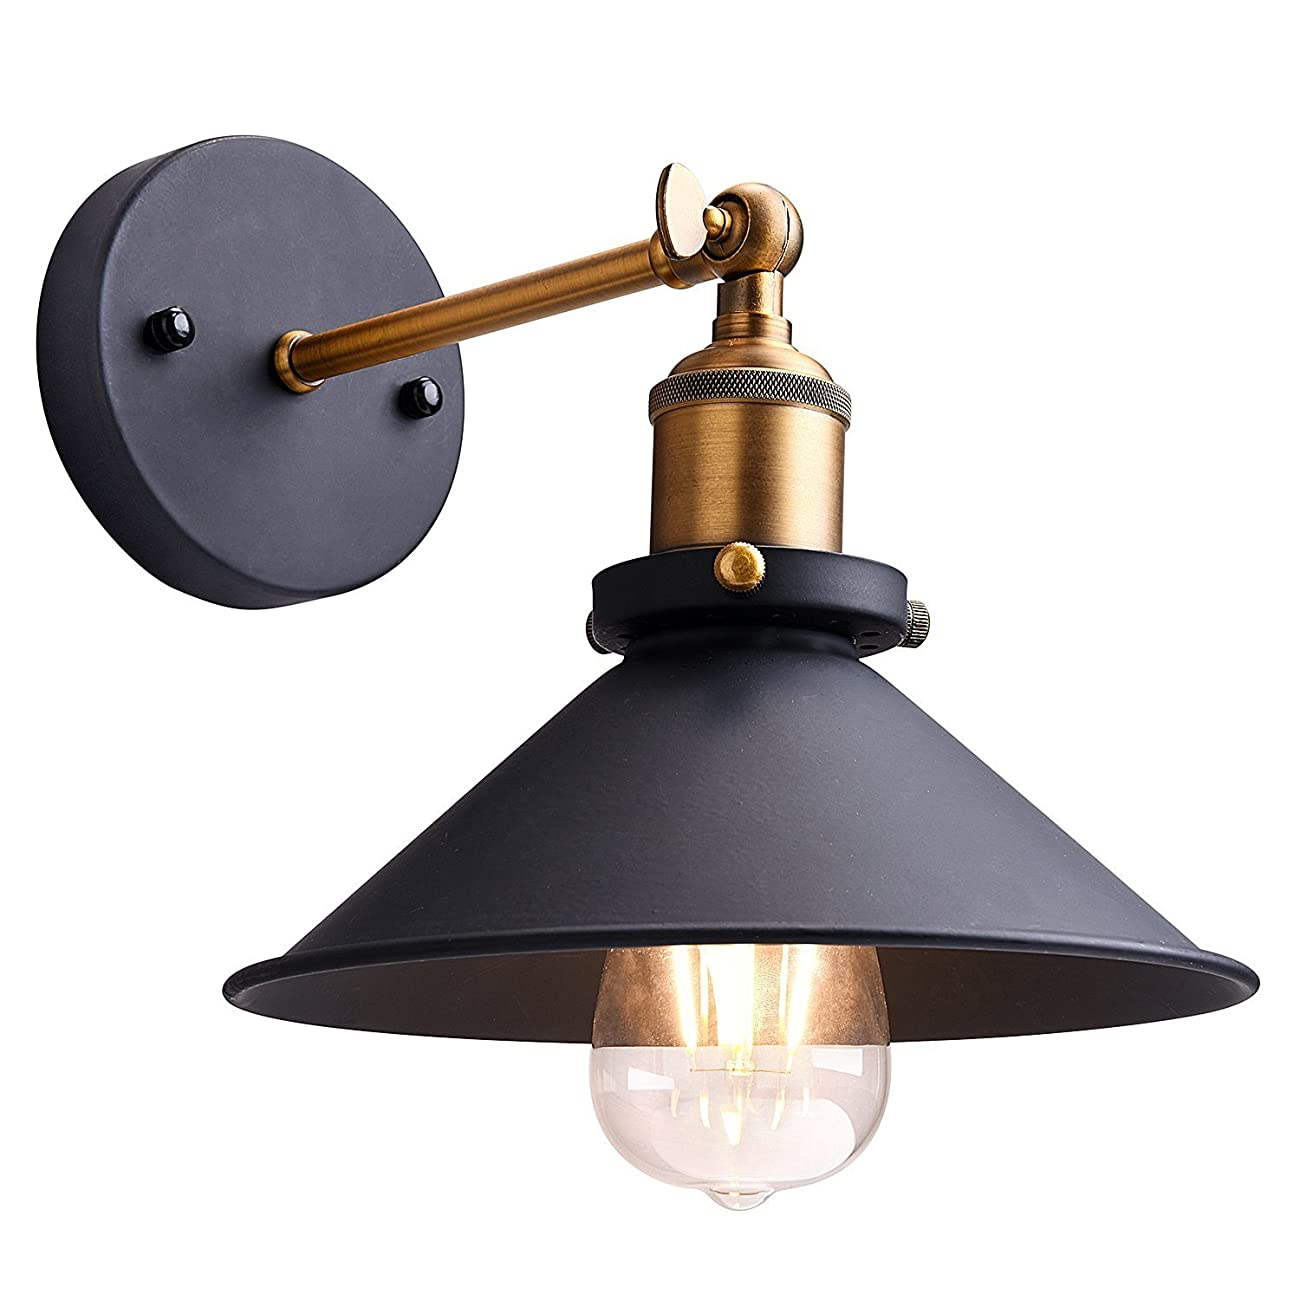 Sanyi Vintage Wall Light Fixture Industrial Edison Simplicity 1 Light Wall Mount Light Aged Steel Finished Wall Sconces 0